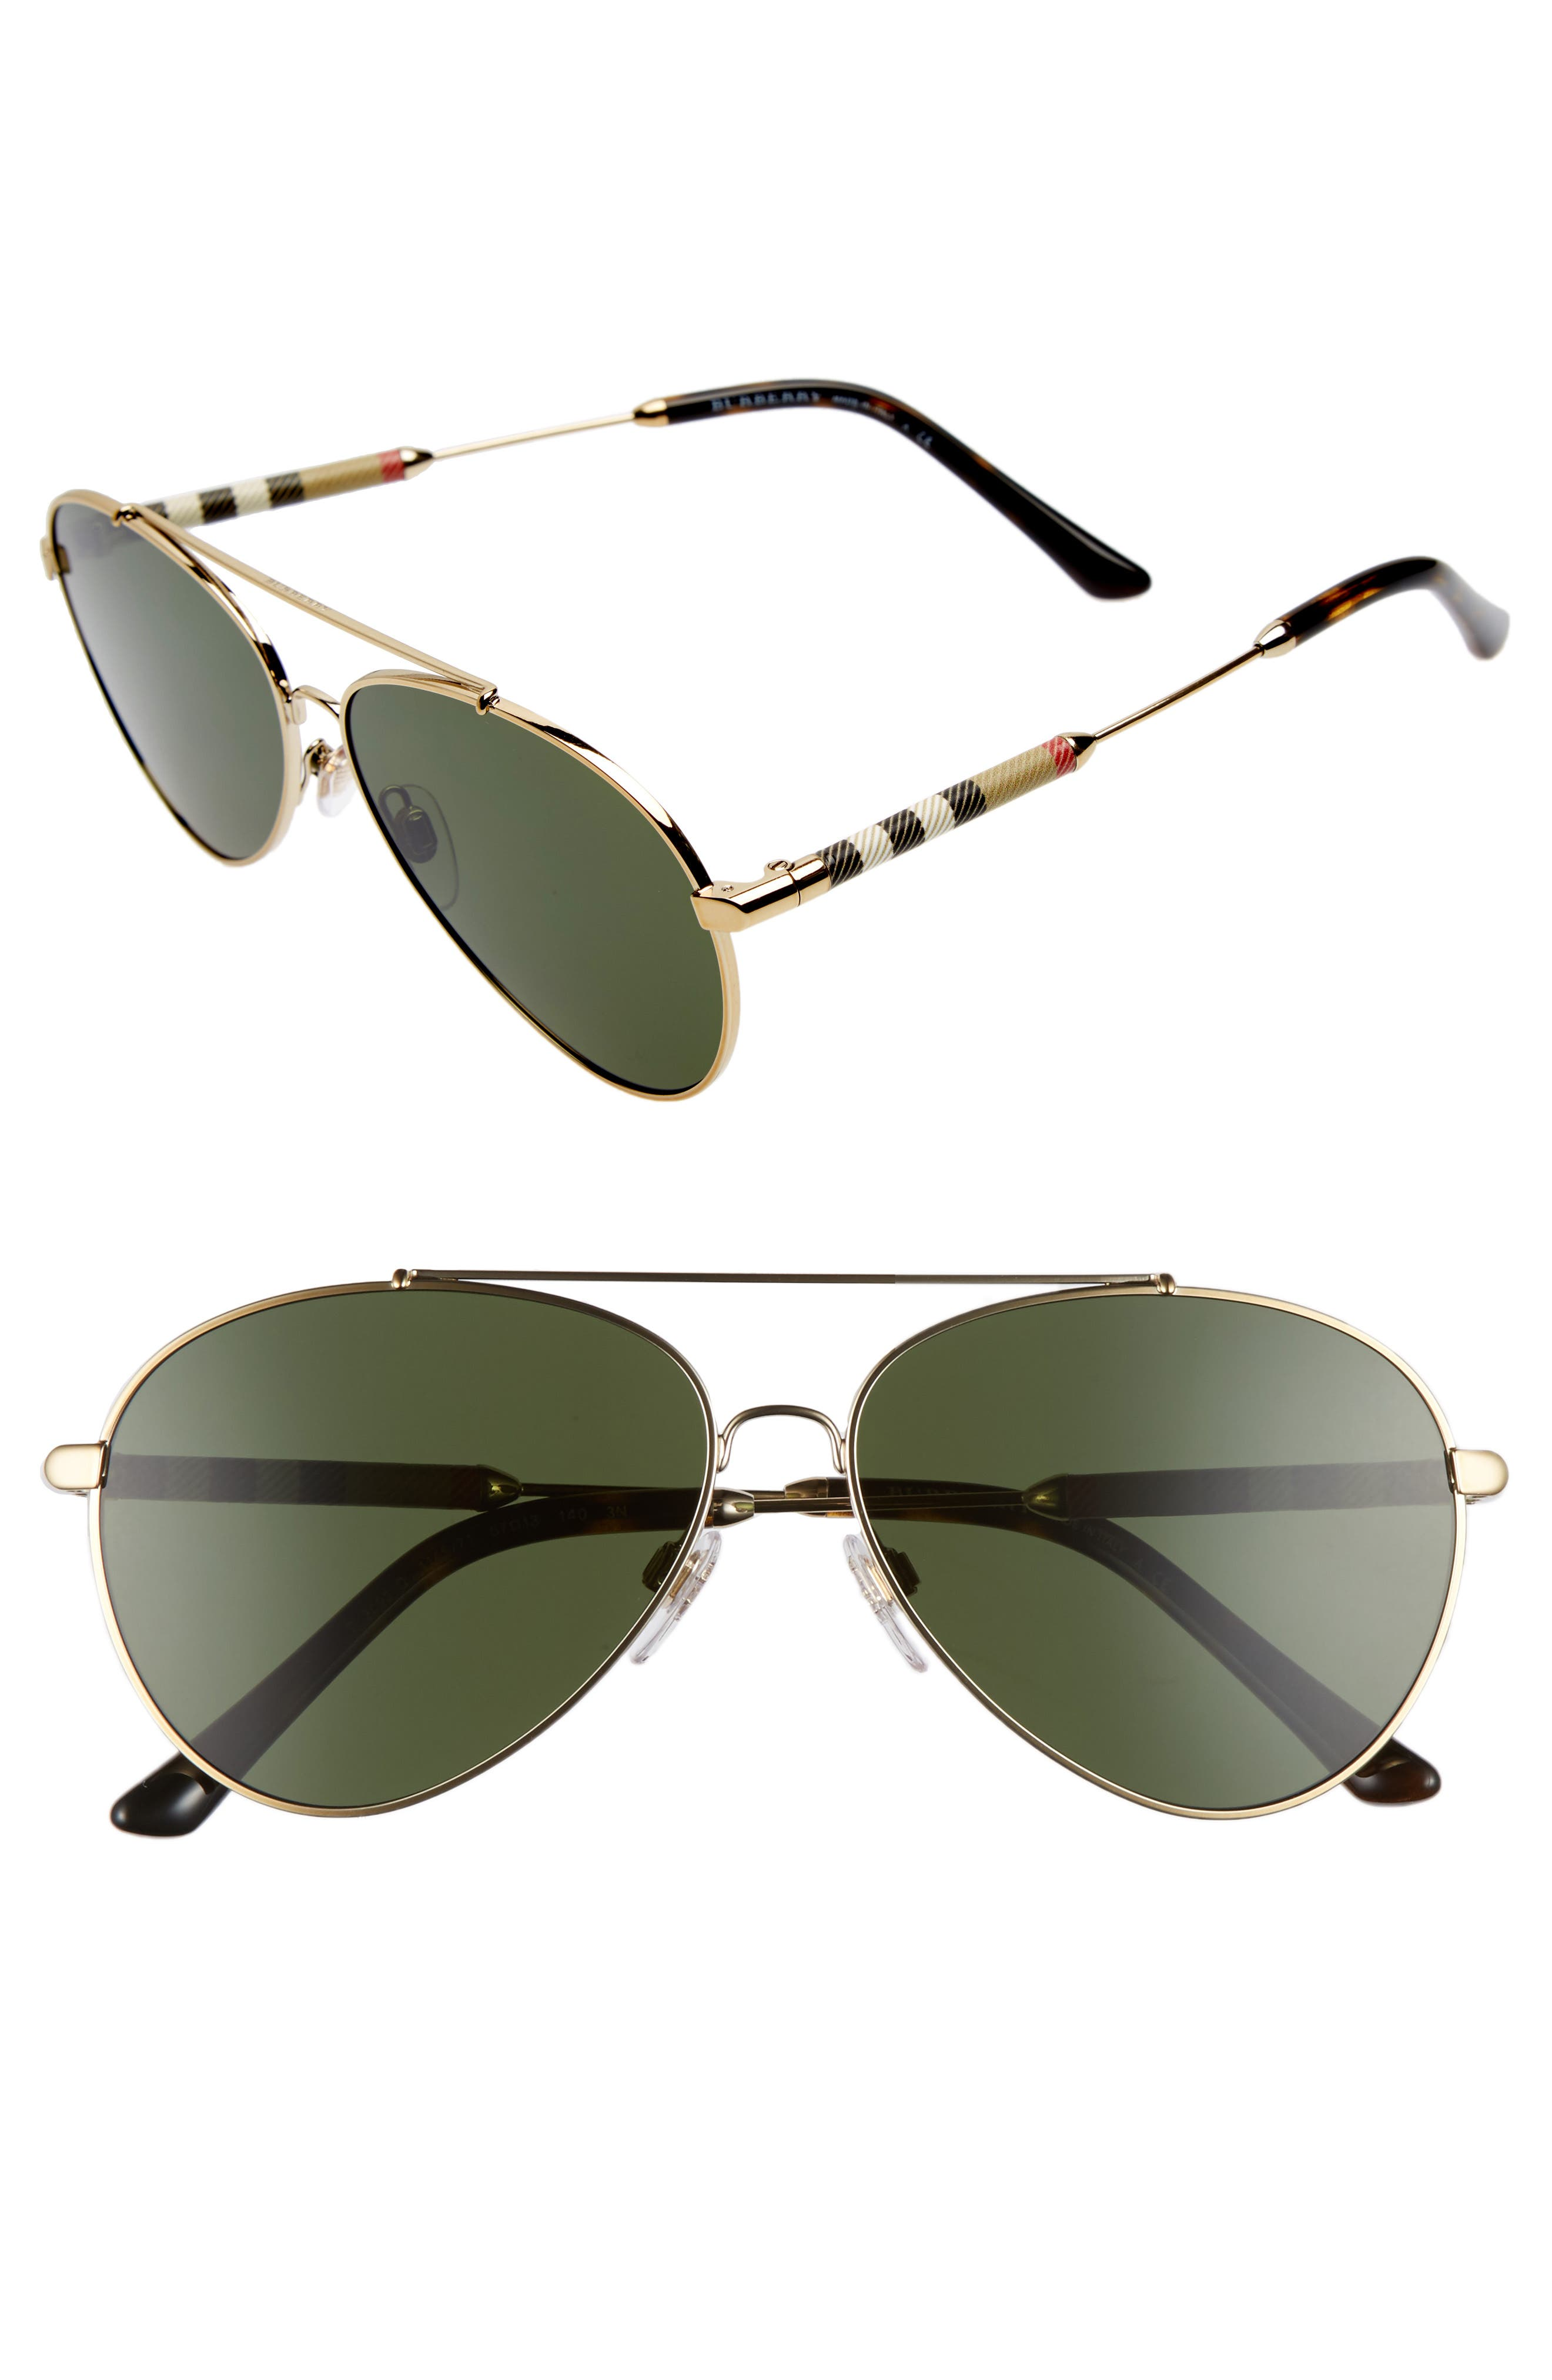 Burberry 57mm Aviator Sunglasses